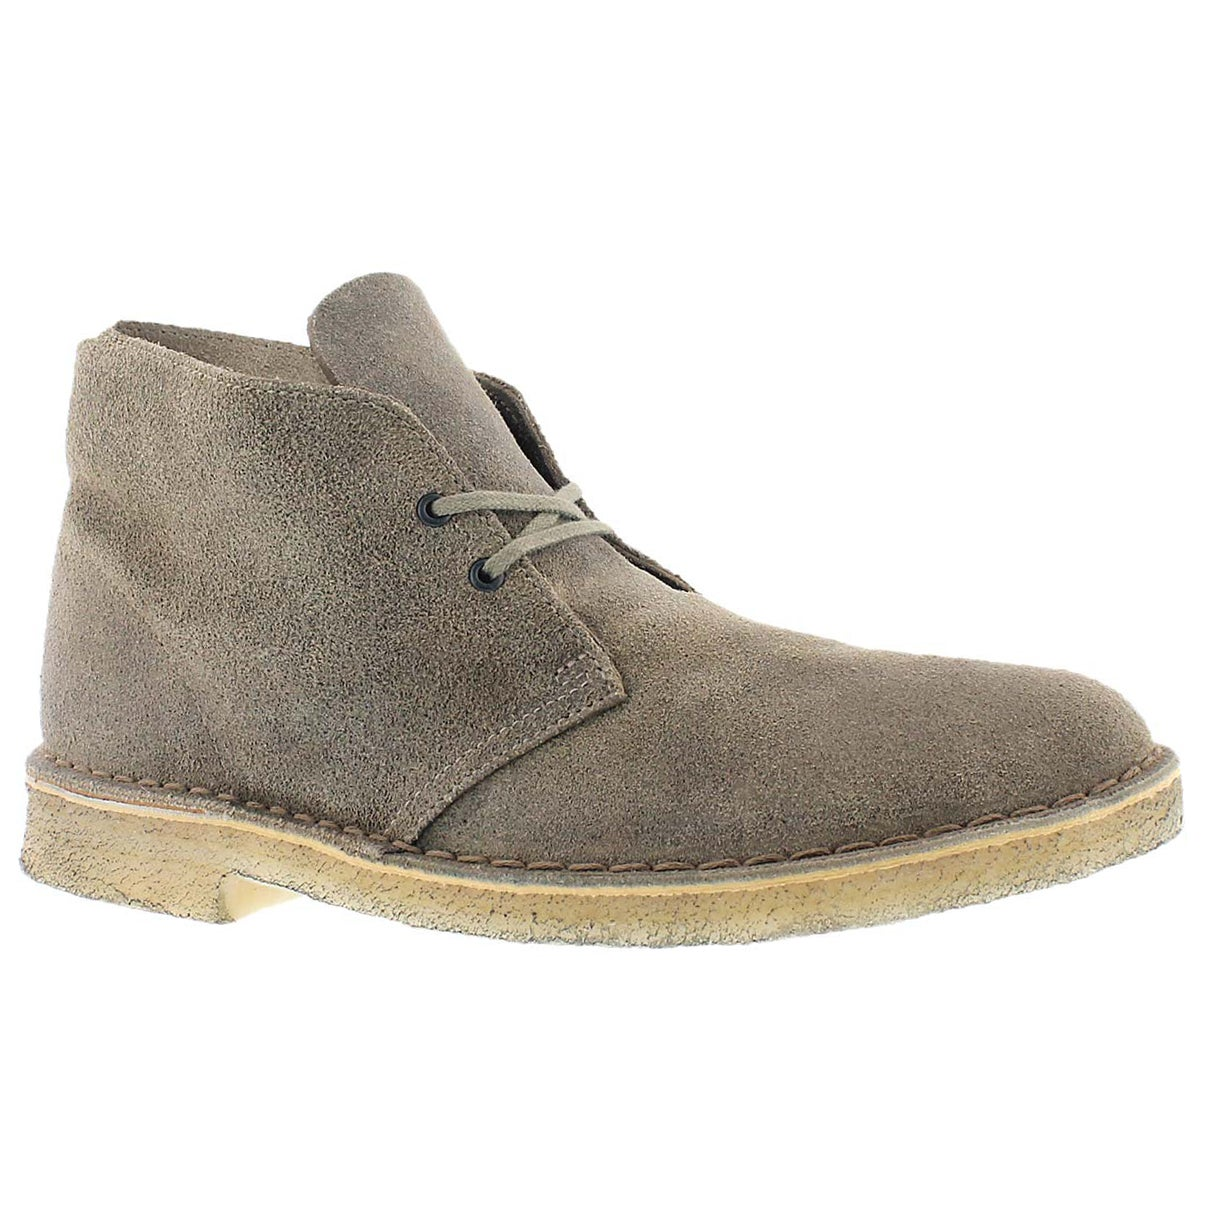 Mns Originals Desert Boot taupe distress